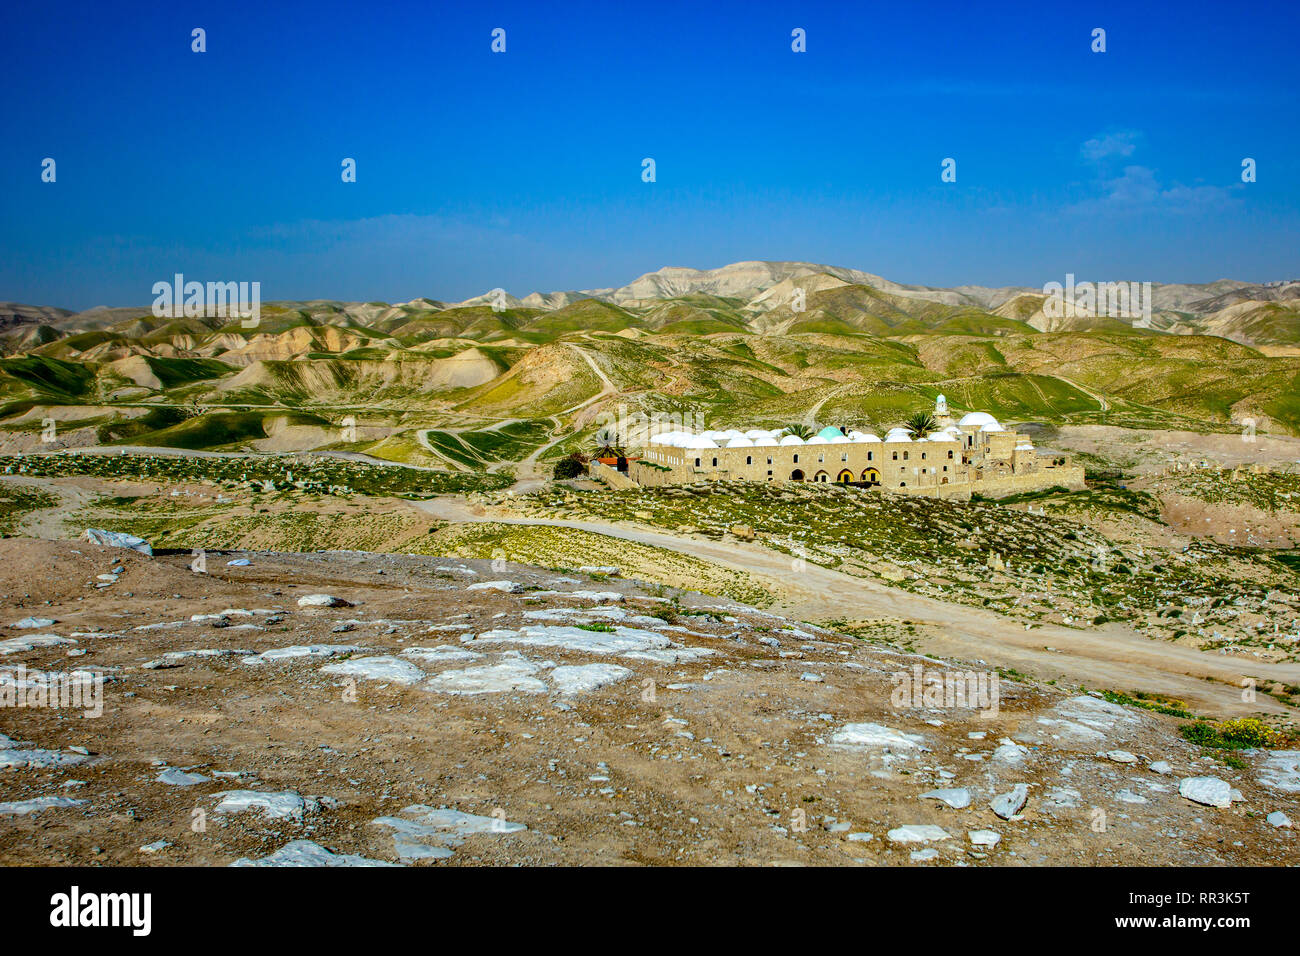 Nabi Musa (Nebi Musa) is the name of a site in the Judean desert, Palestine that popular Palestinian folklore associates with Moses. - Stock Image